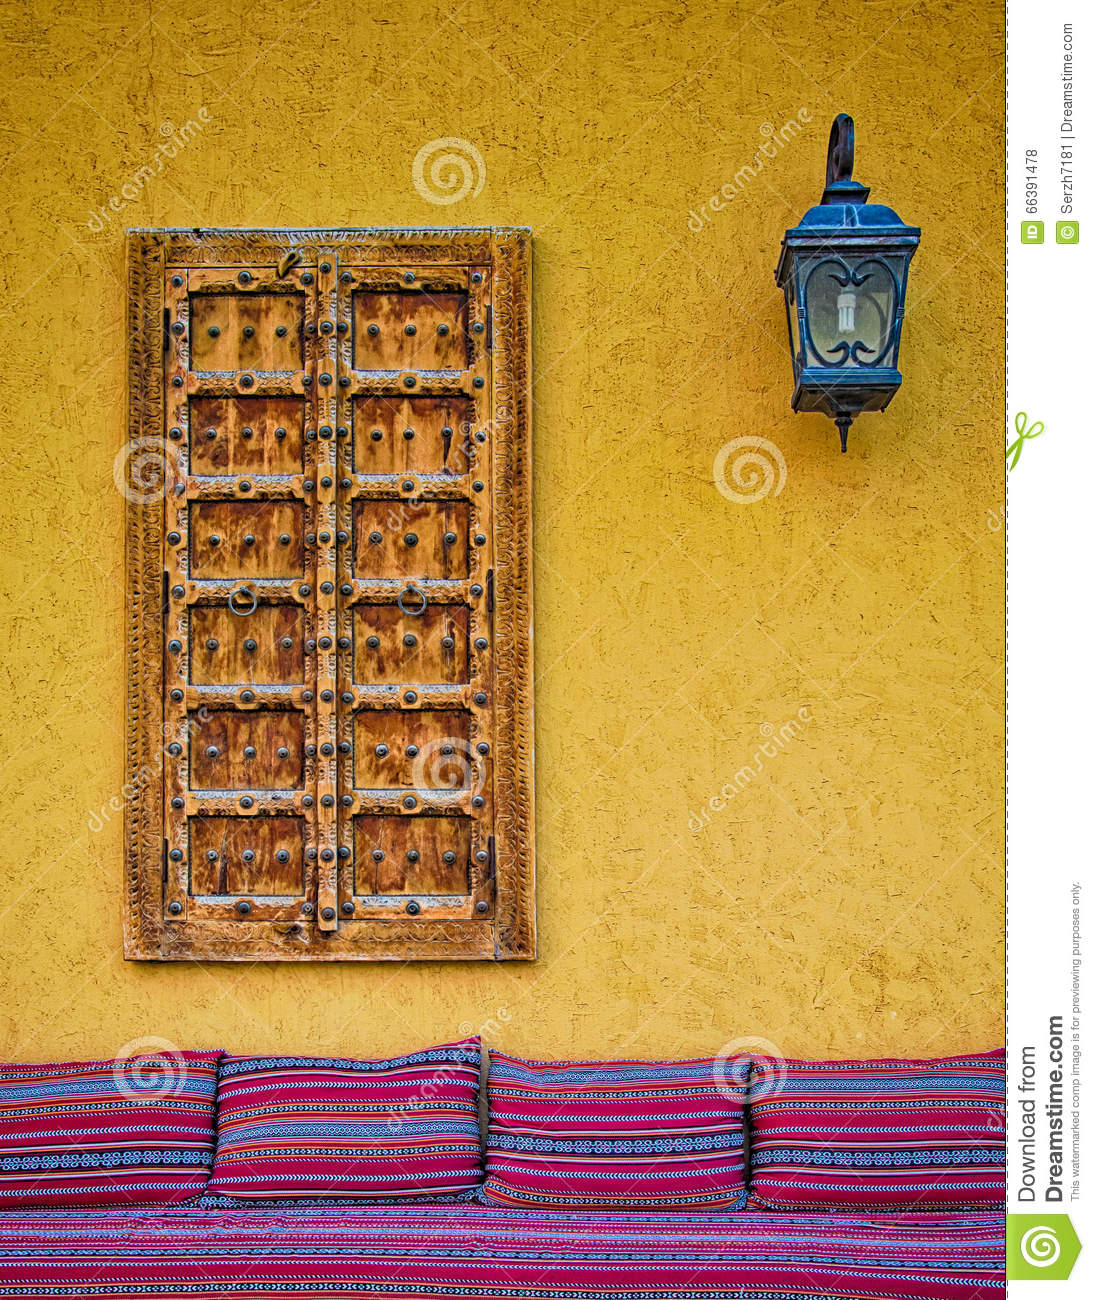 Wall Lamps Uae : The Wall With Window And Lamp Stock Photo - Image: 66391478